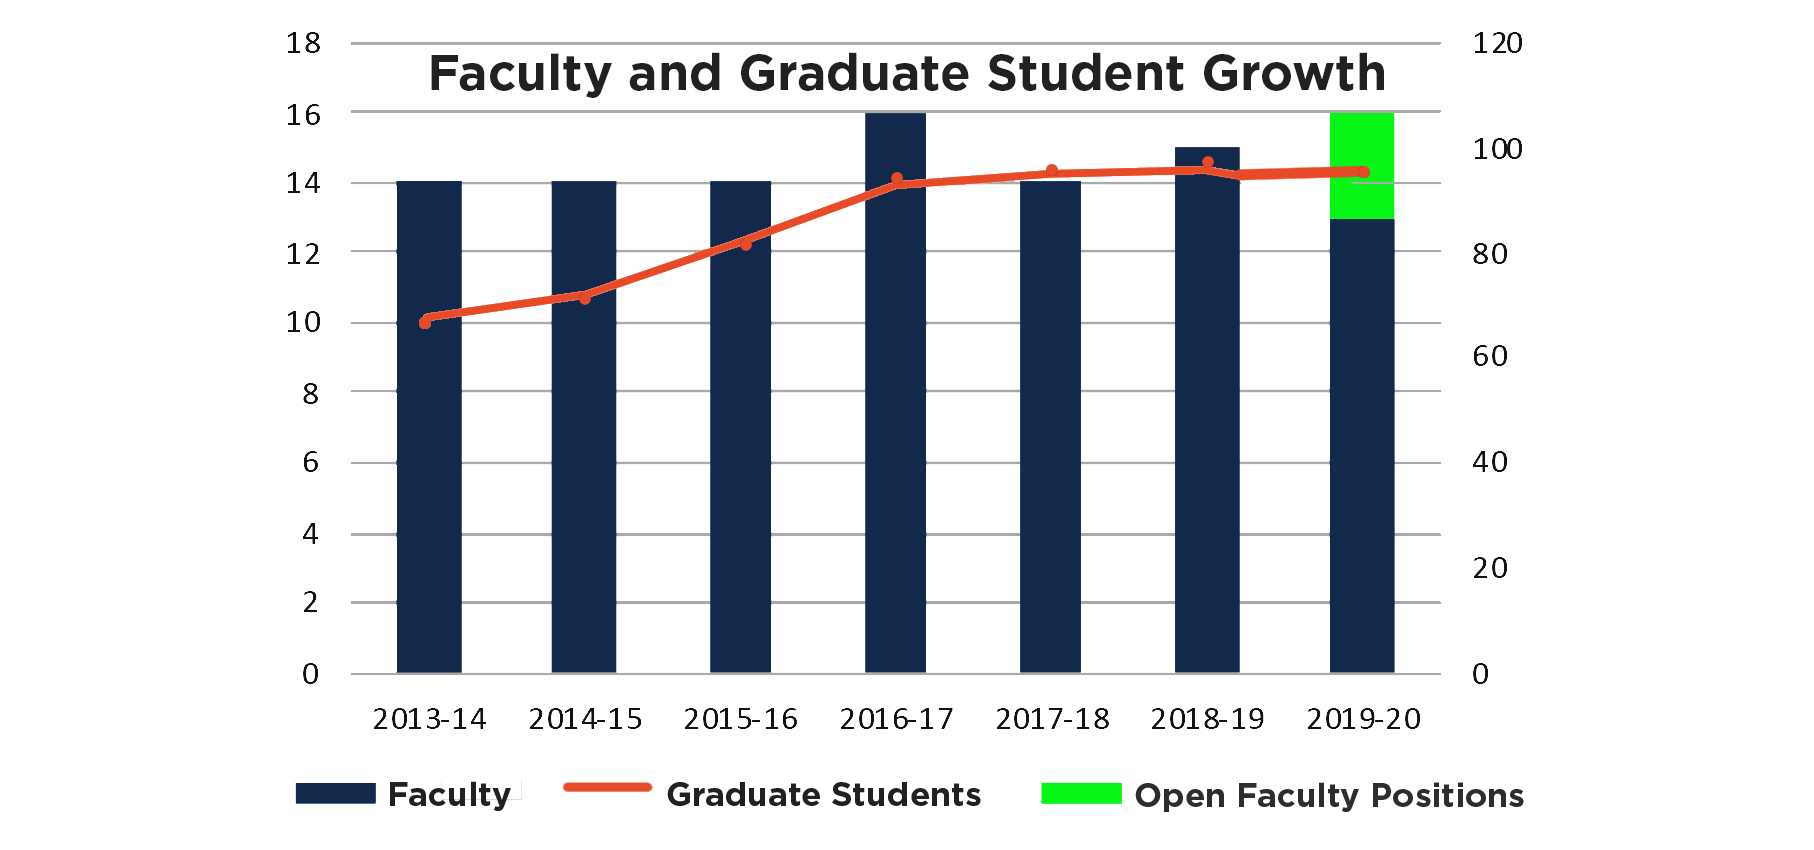 Faculty and graduate student increases